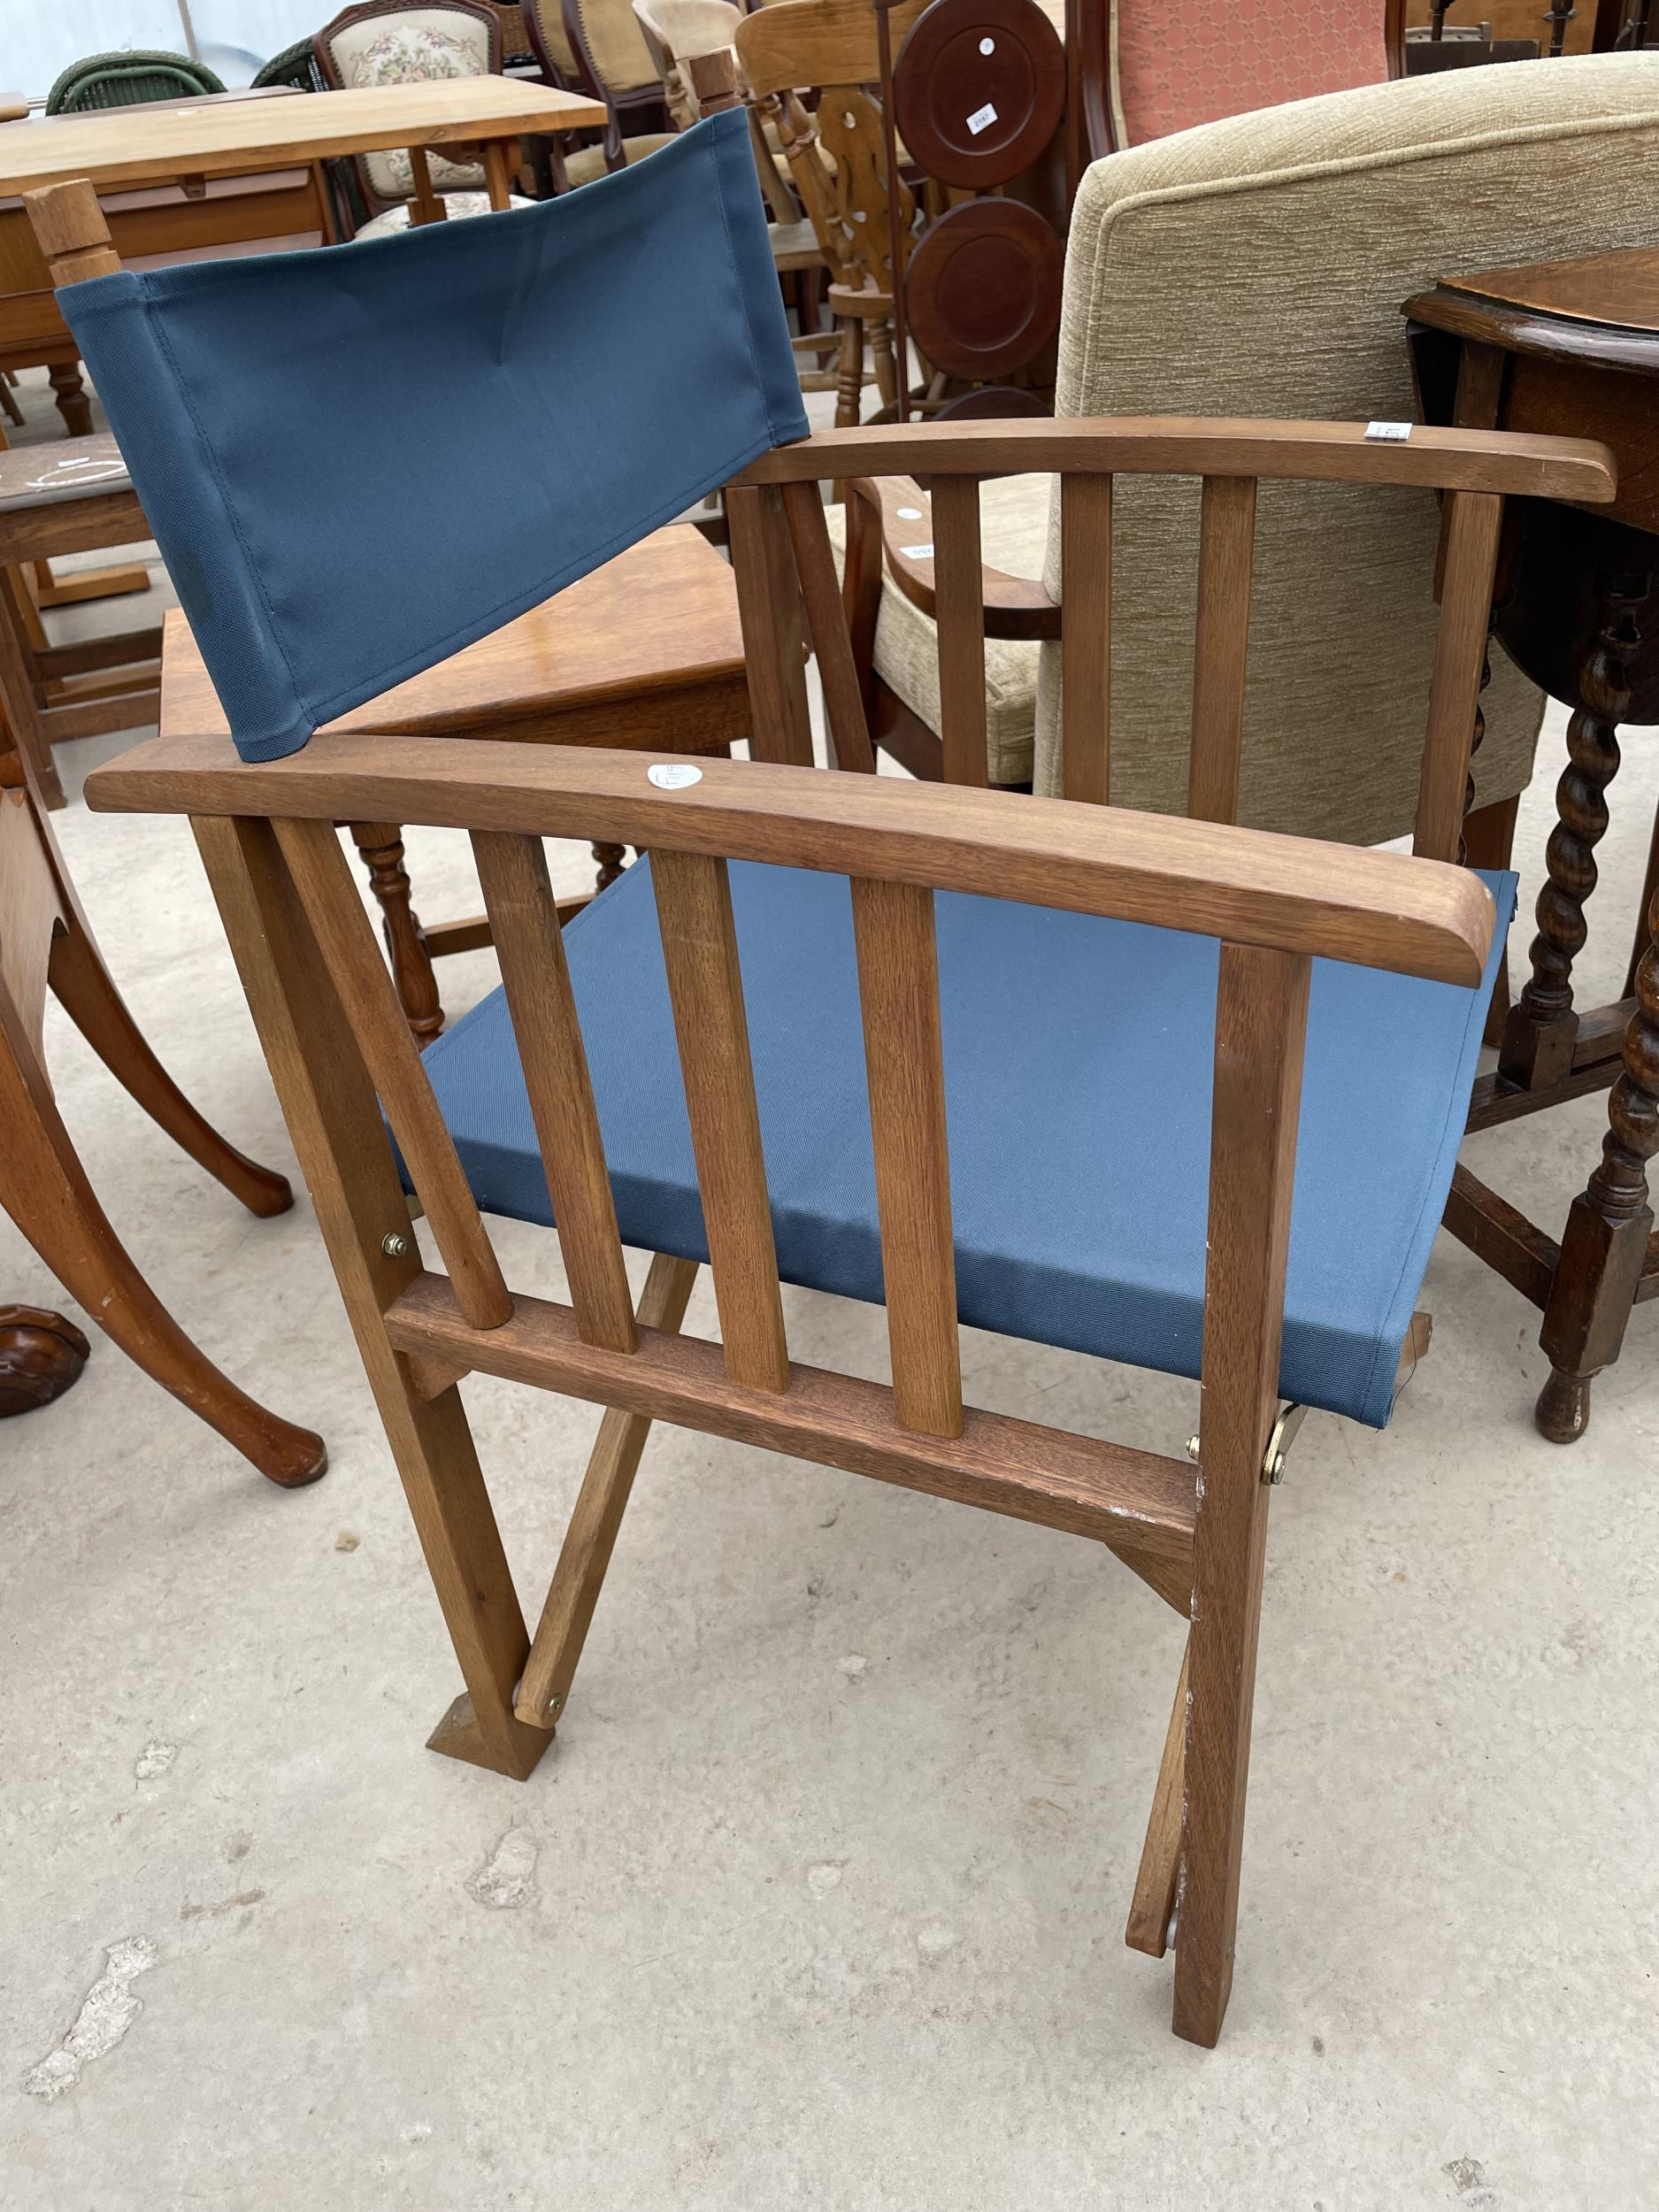 A ROYALCRAFT DIRECTORS STYLE CHAIR - Image 2 of 2